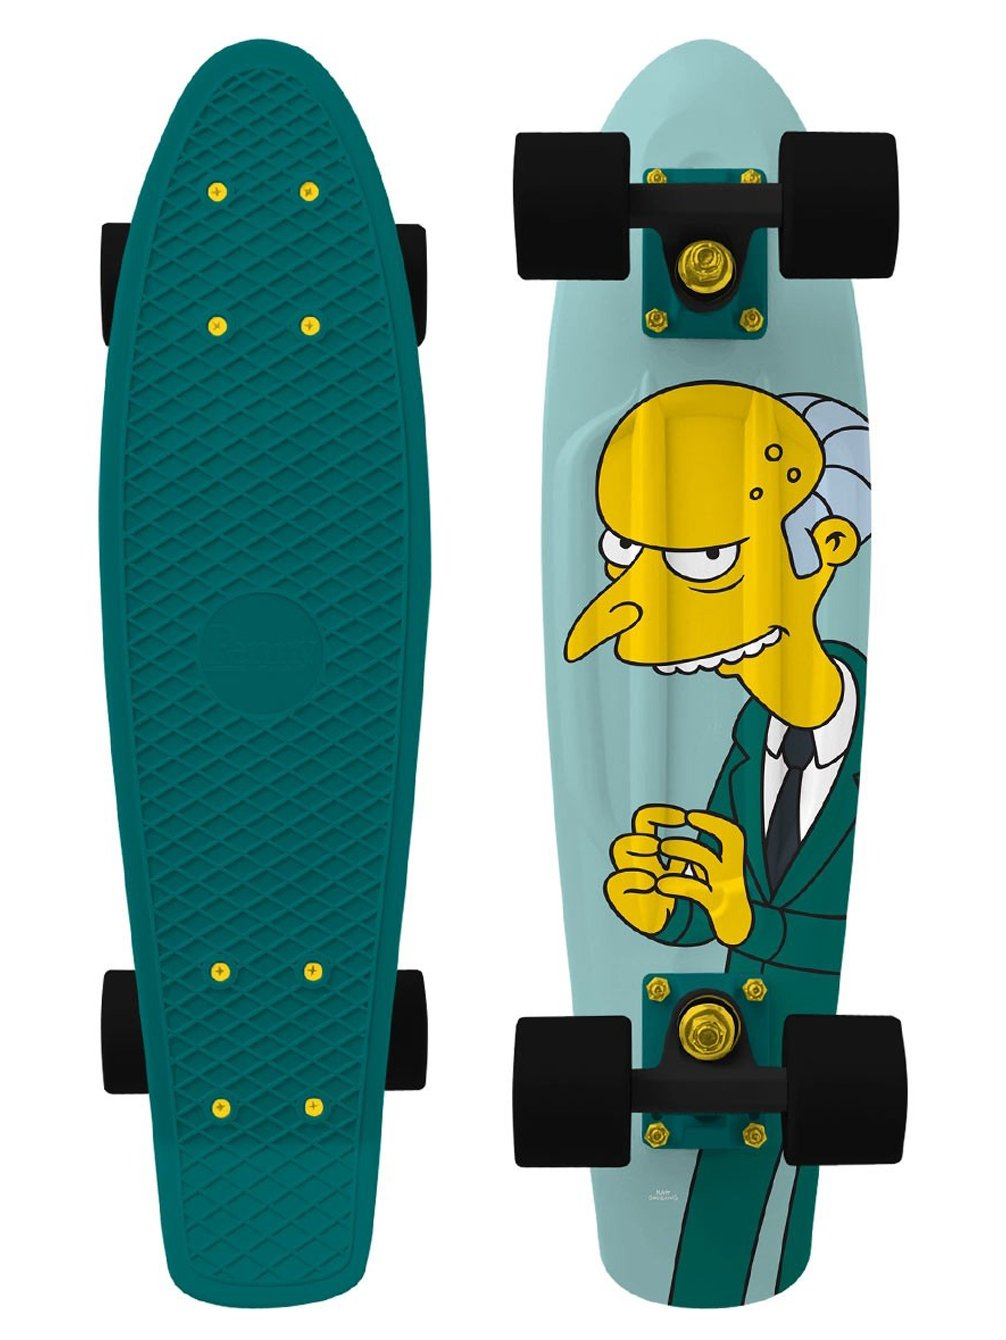 Penny - Simpsons Nickel 22 - Excellent - penny boards